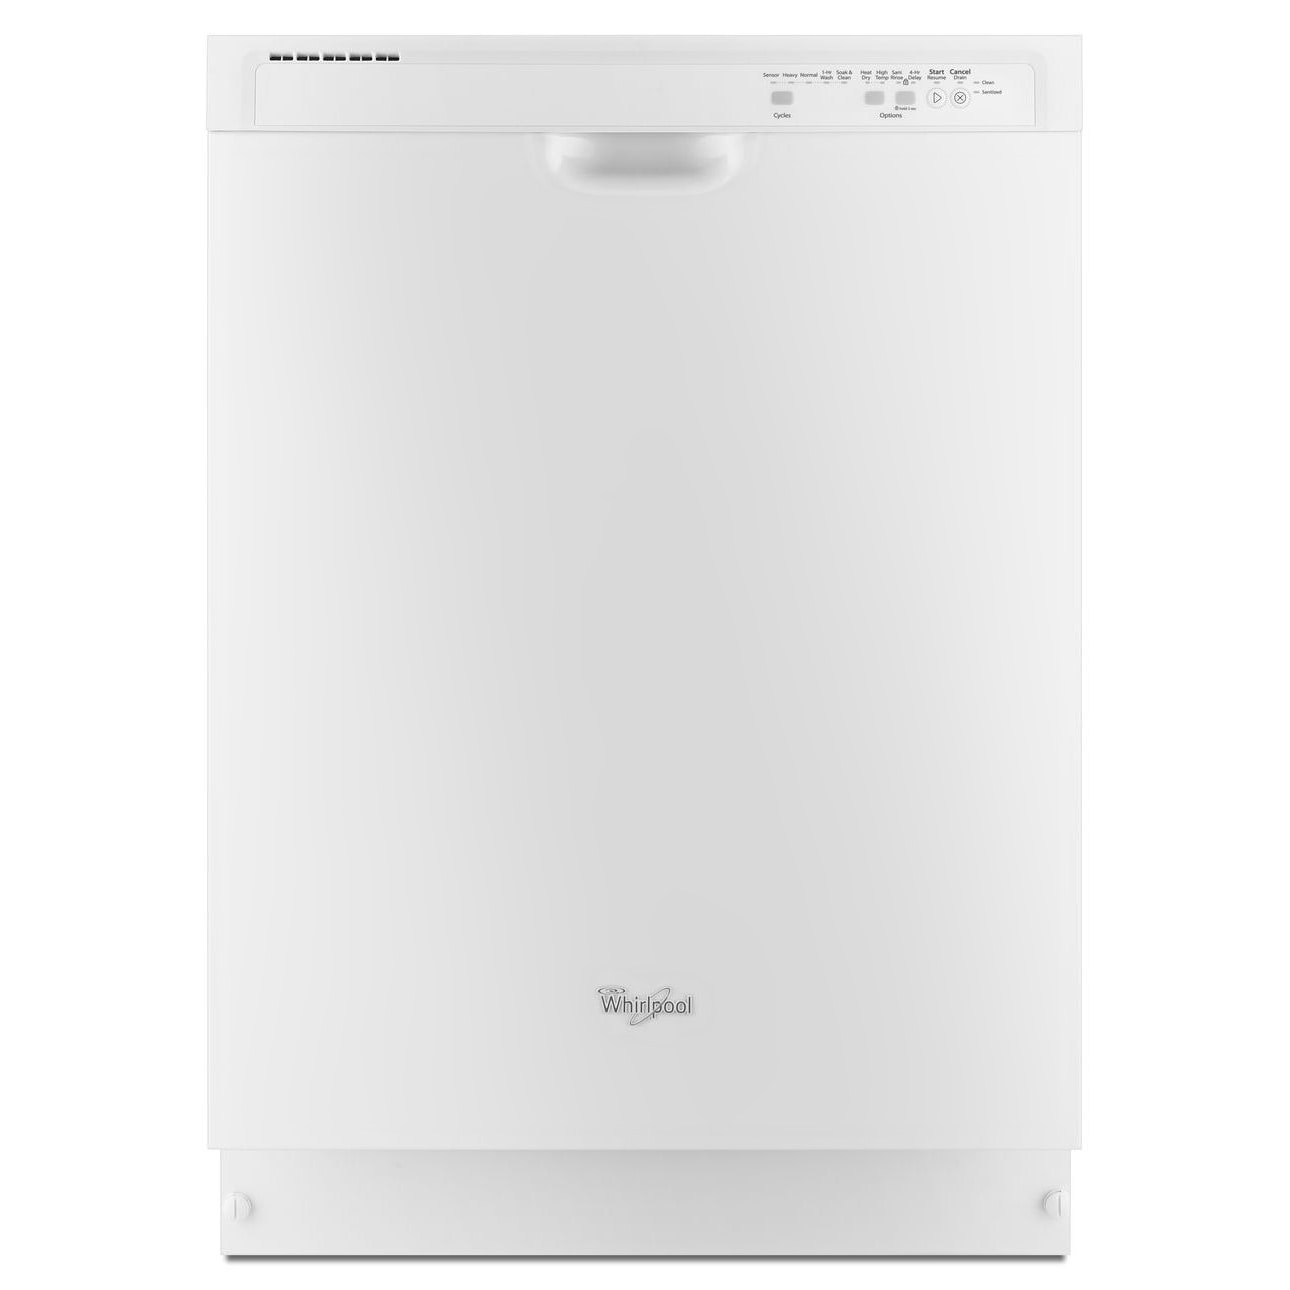 Clean-Up - Whirlpool Dishwasher WDF540PADW